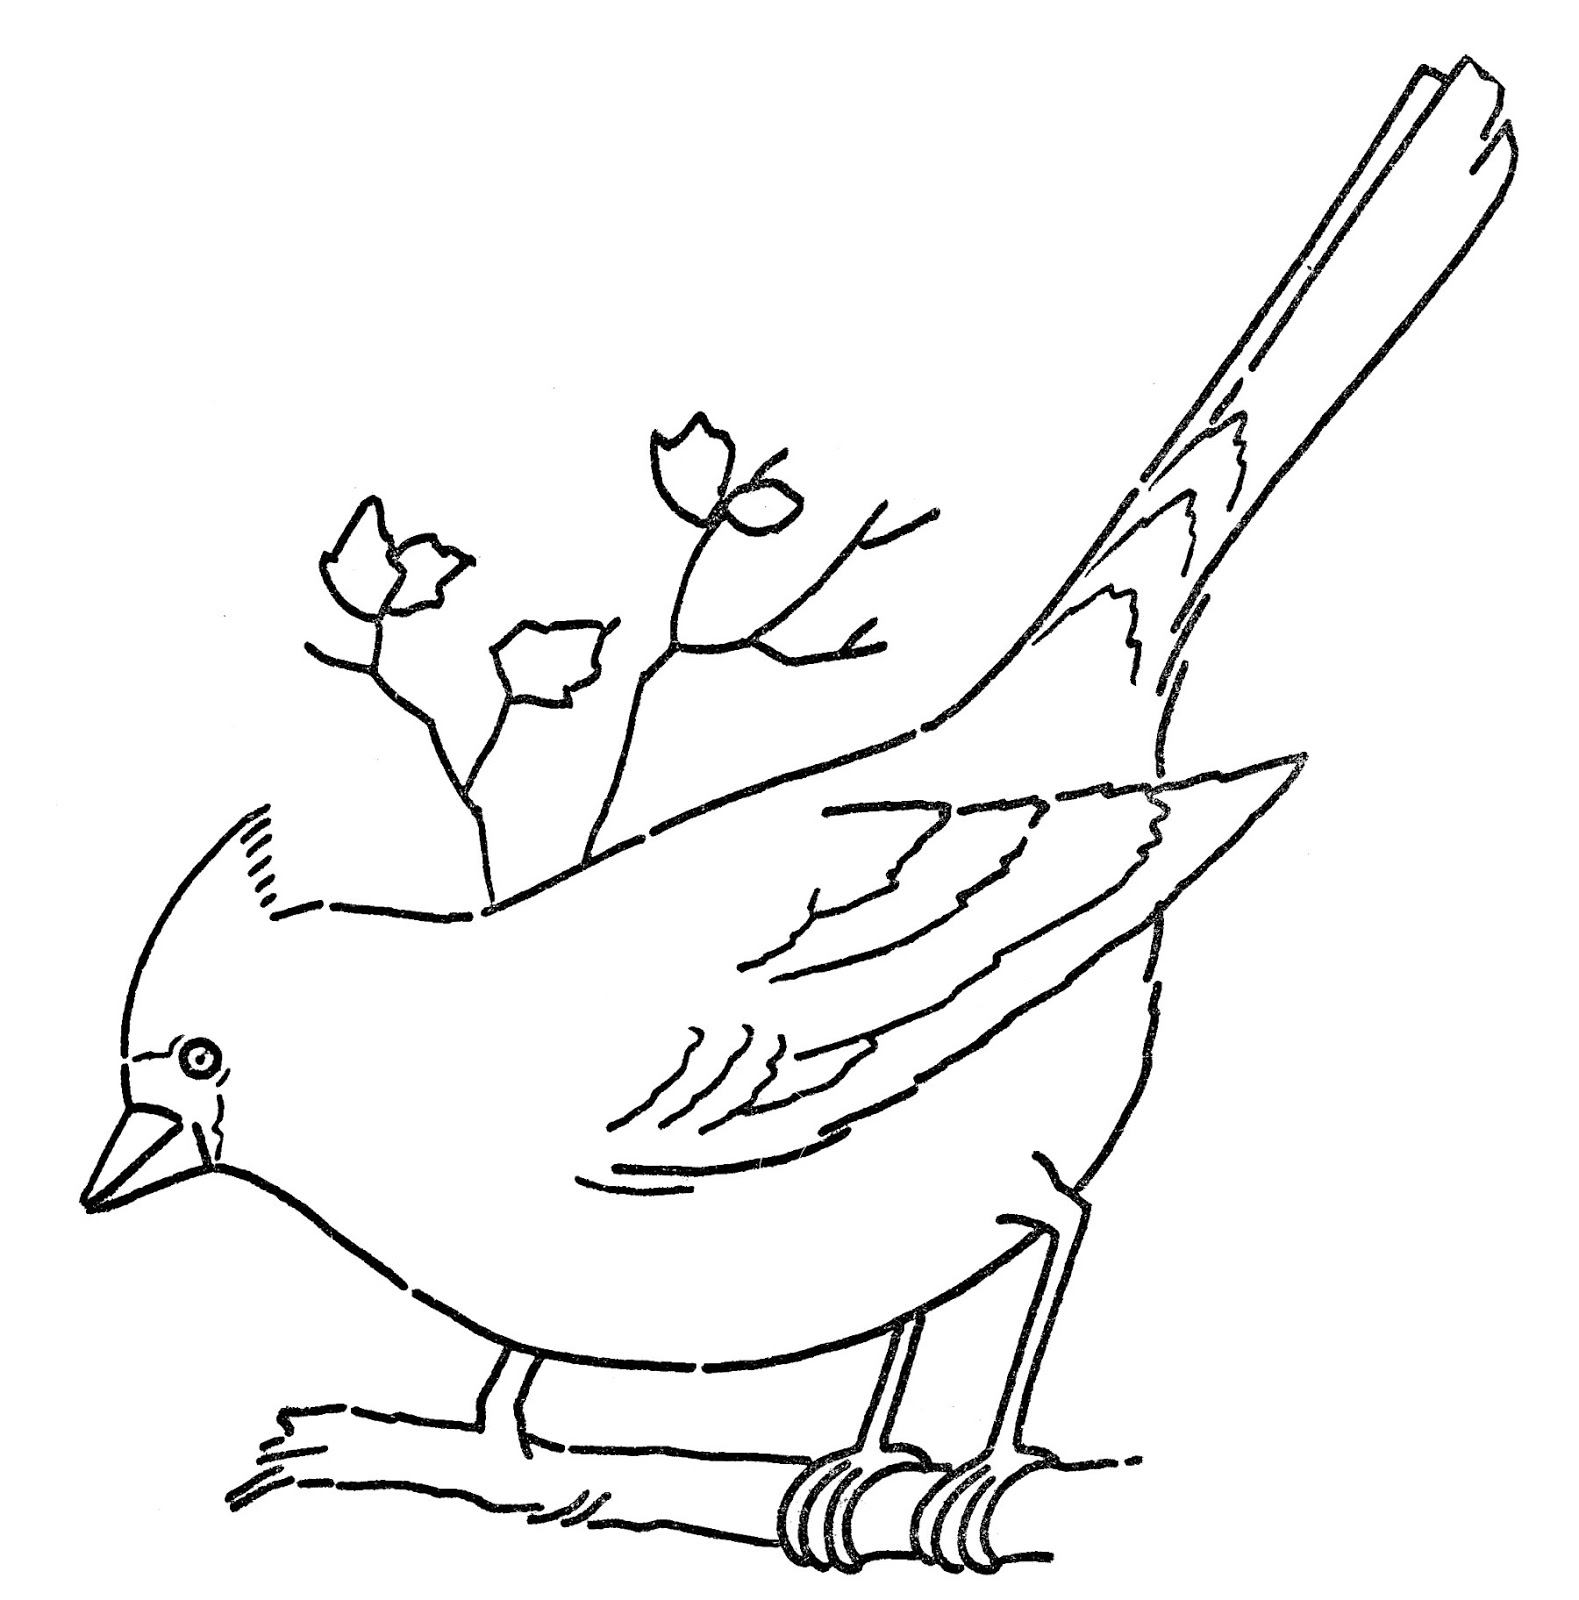 Line art coloring page. Cardinal clipart black and white